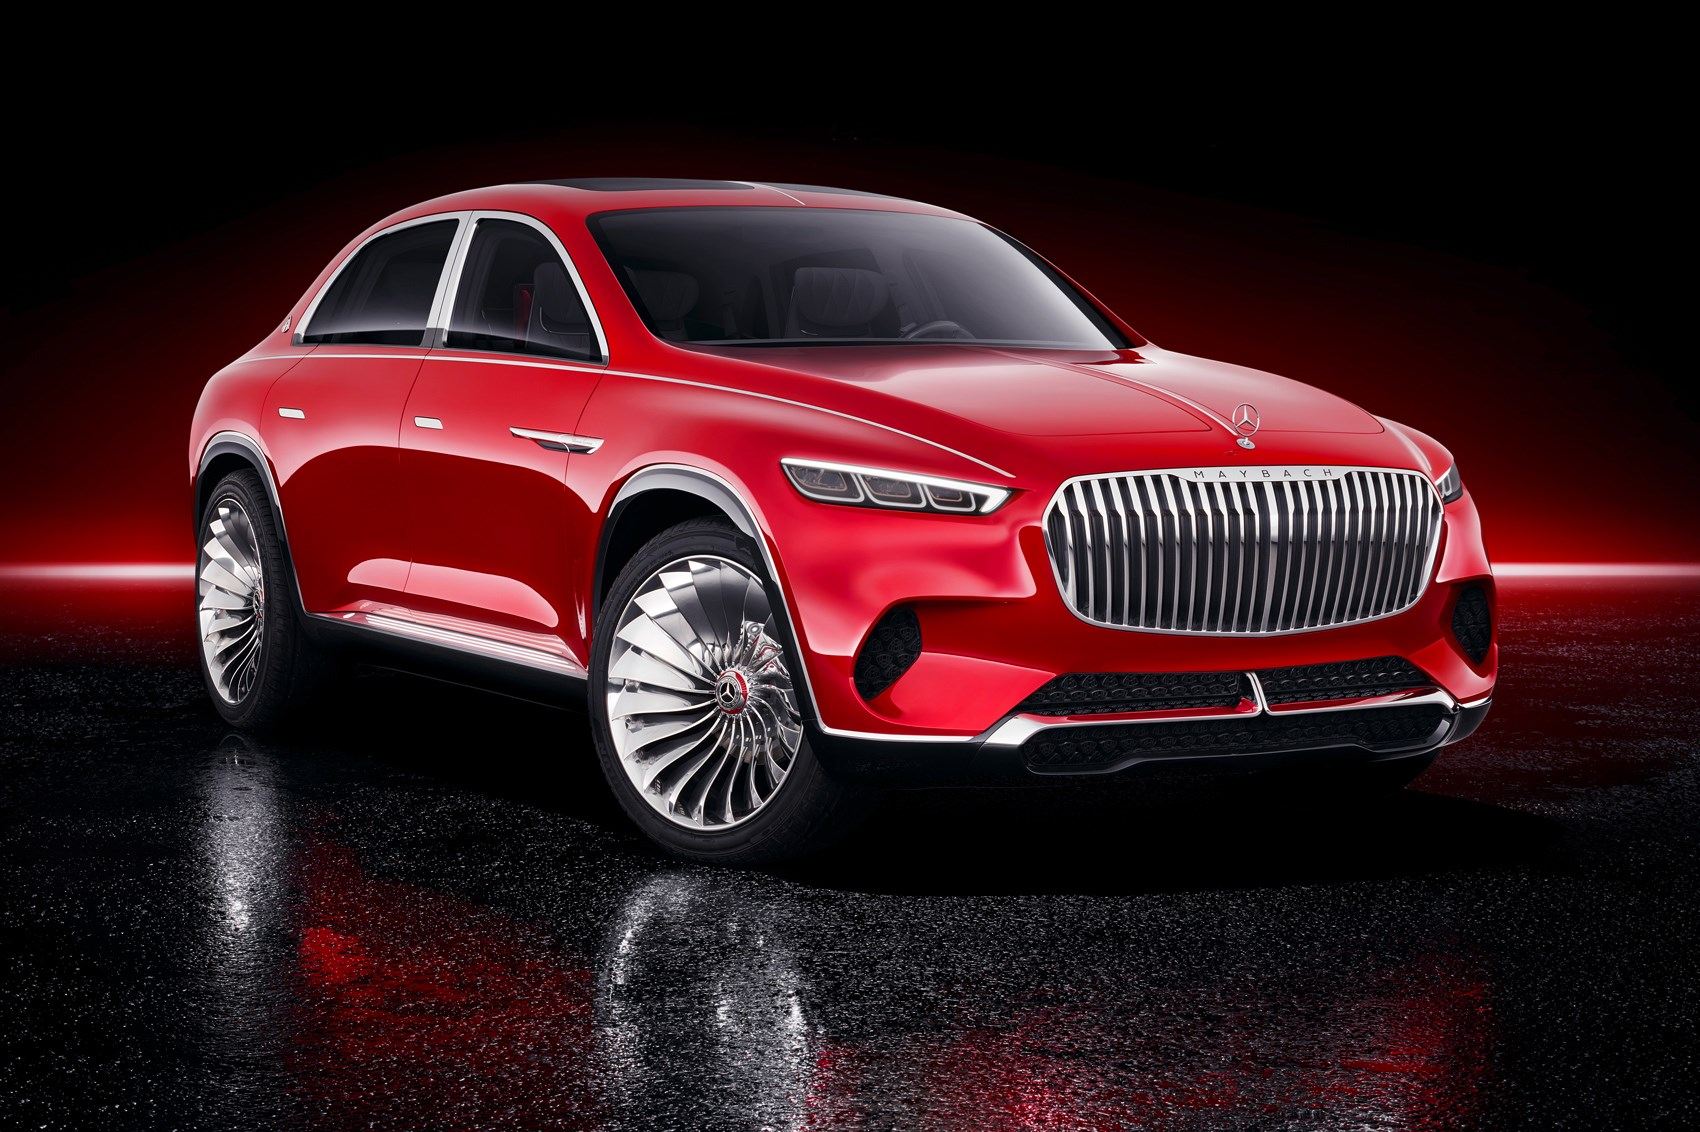 Vision Mercedes-Maybach Ultimate Luxury: EV Blends Saloon